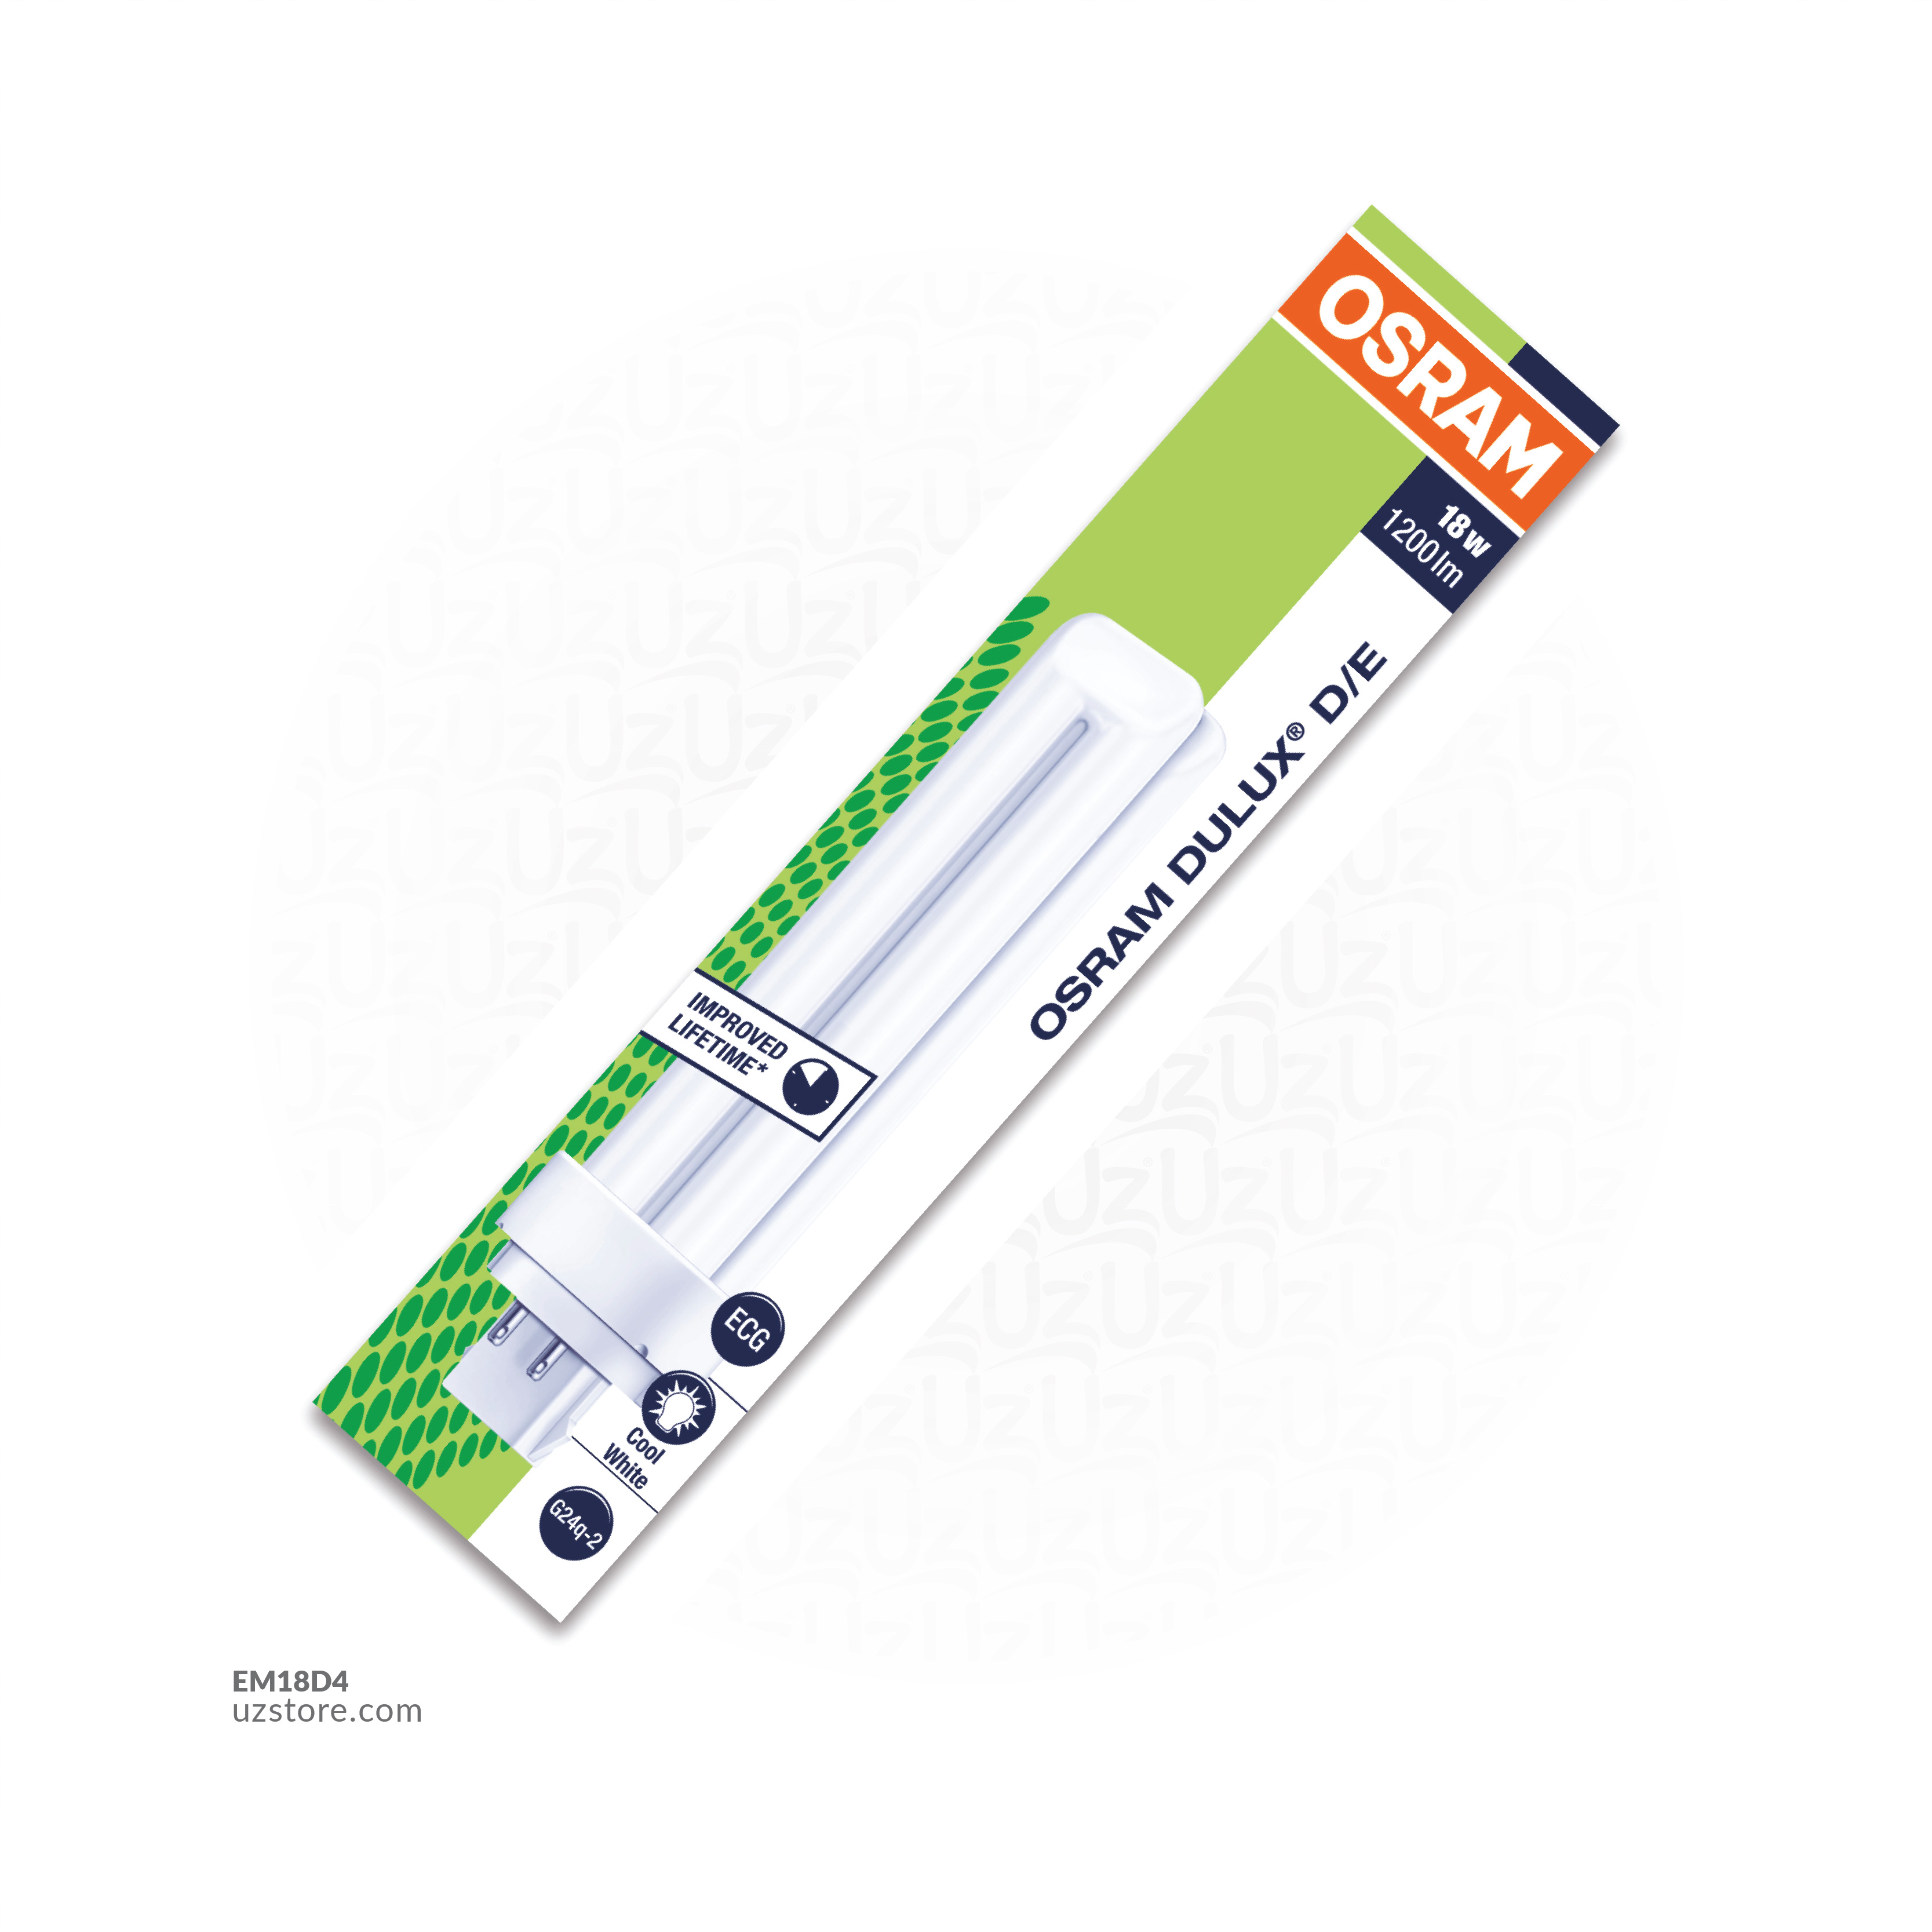 OSRAM DULUX-DE 18W COOL WHITE G24Q-2 4 PIN